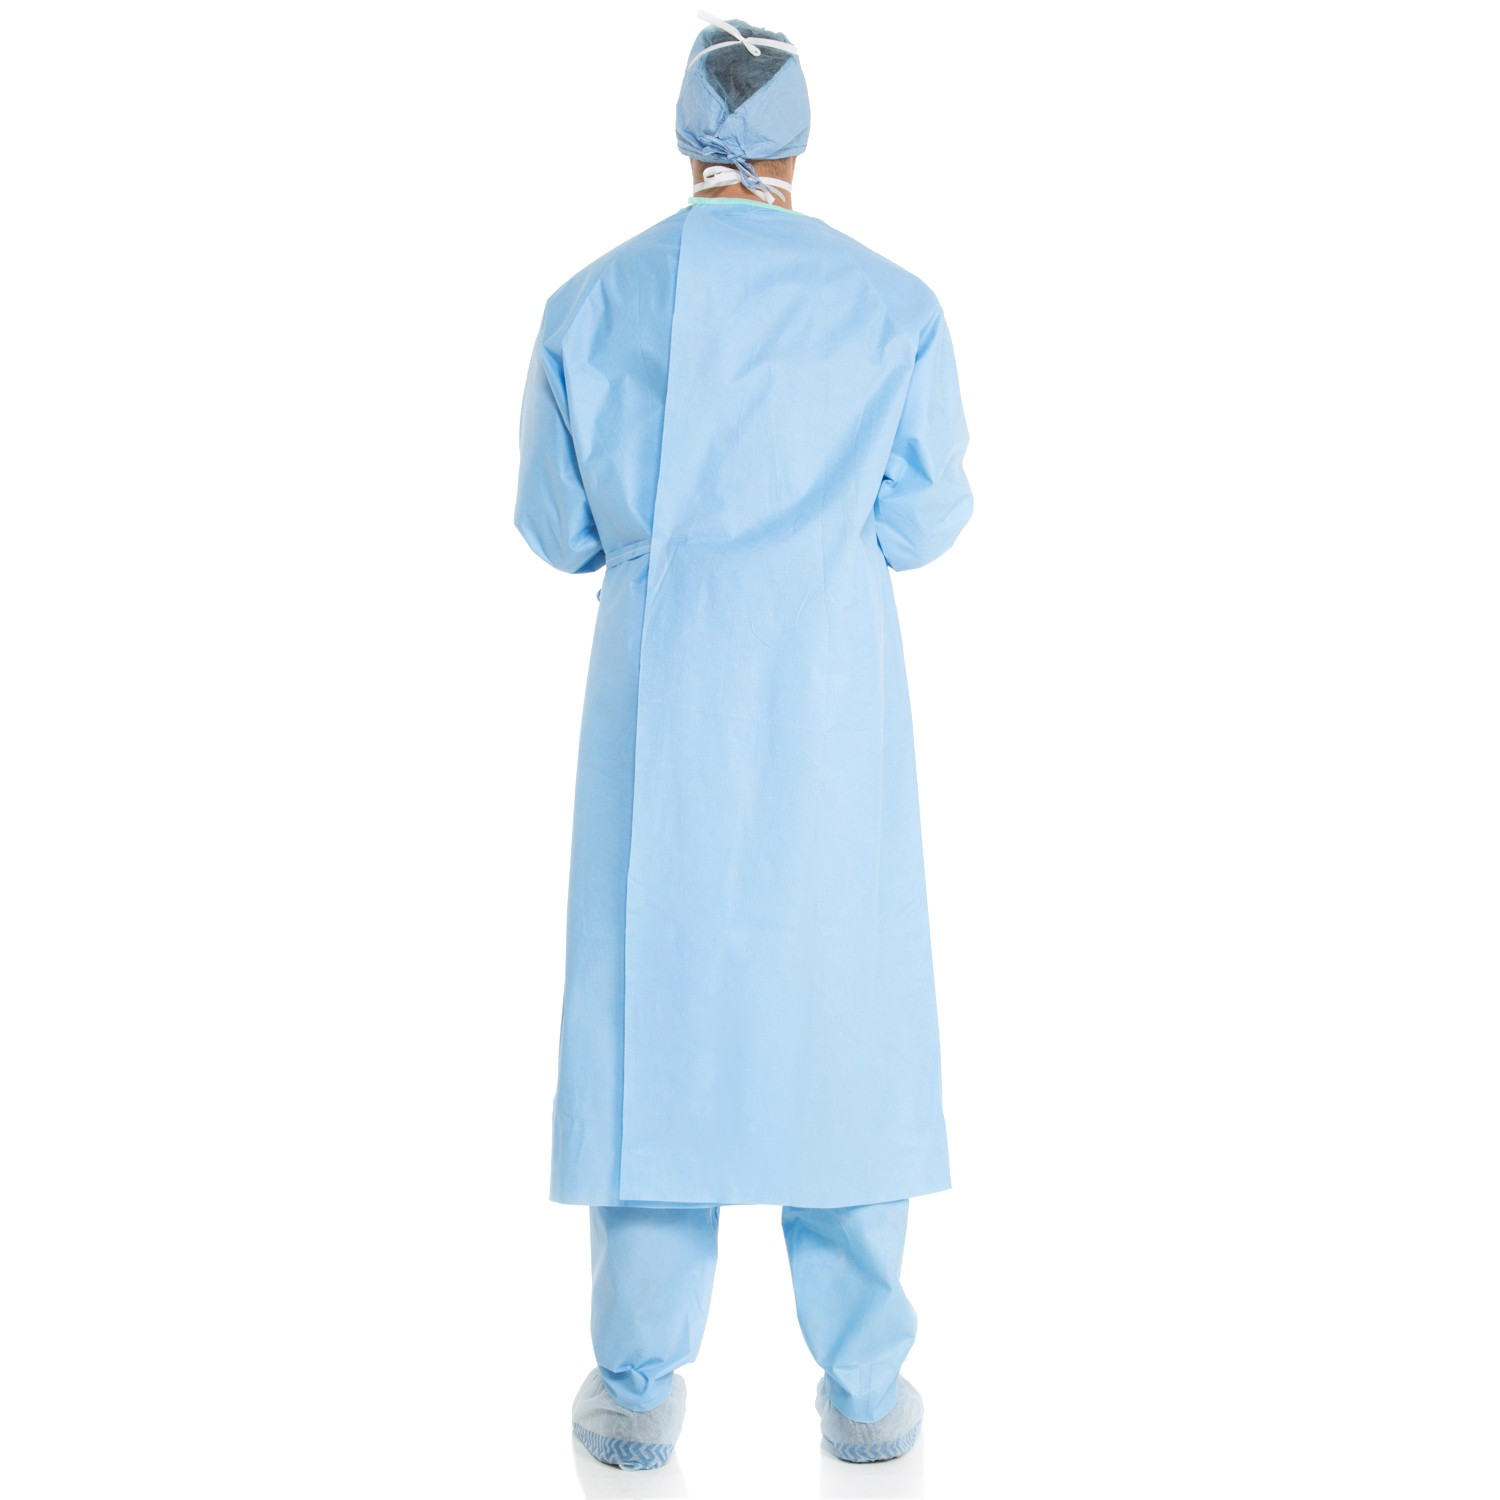 ULTRA* Fabric-Reinforced Surgical Gown   Halyard Health